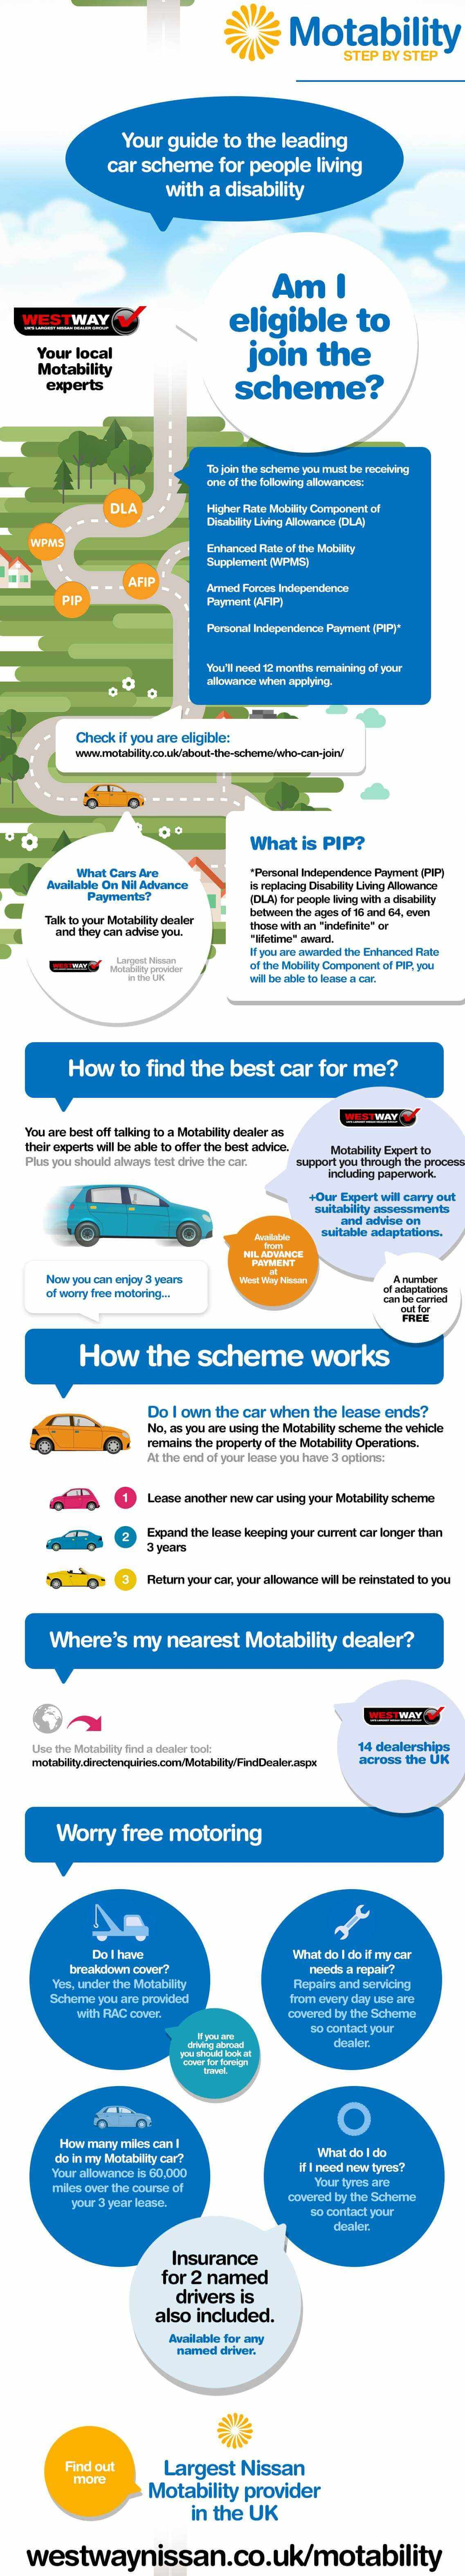 Guide To The Motability